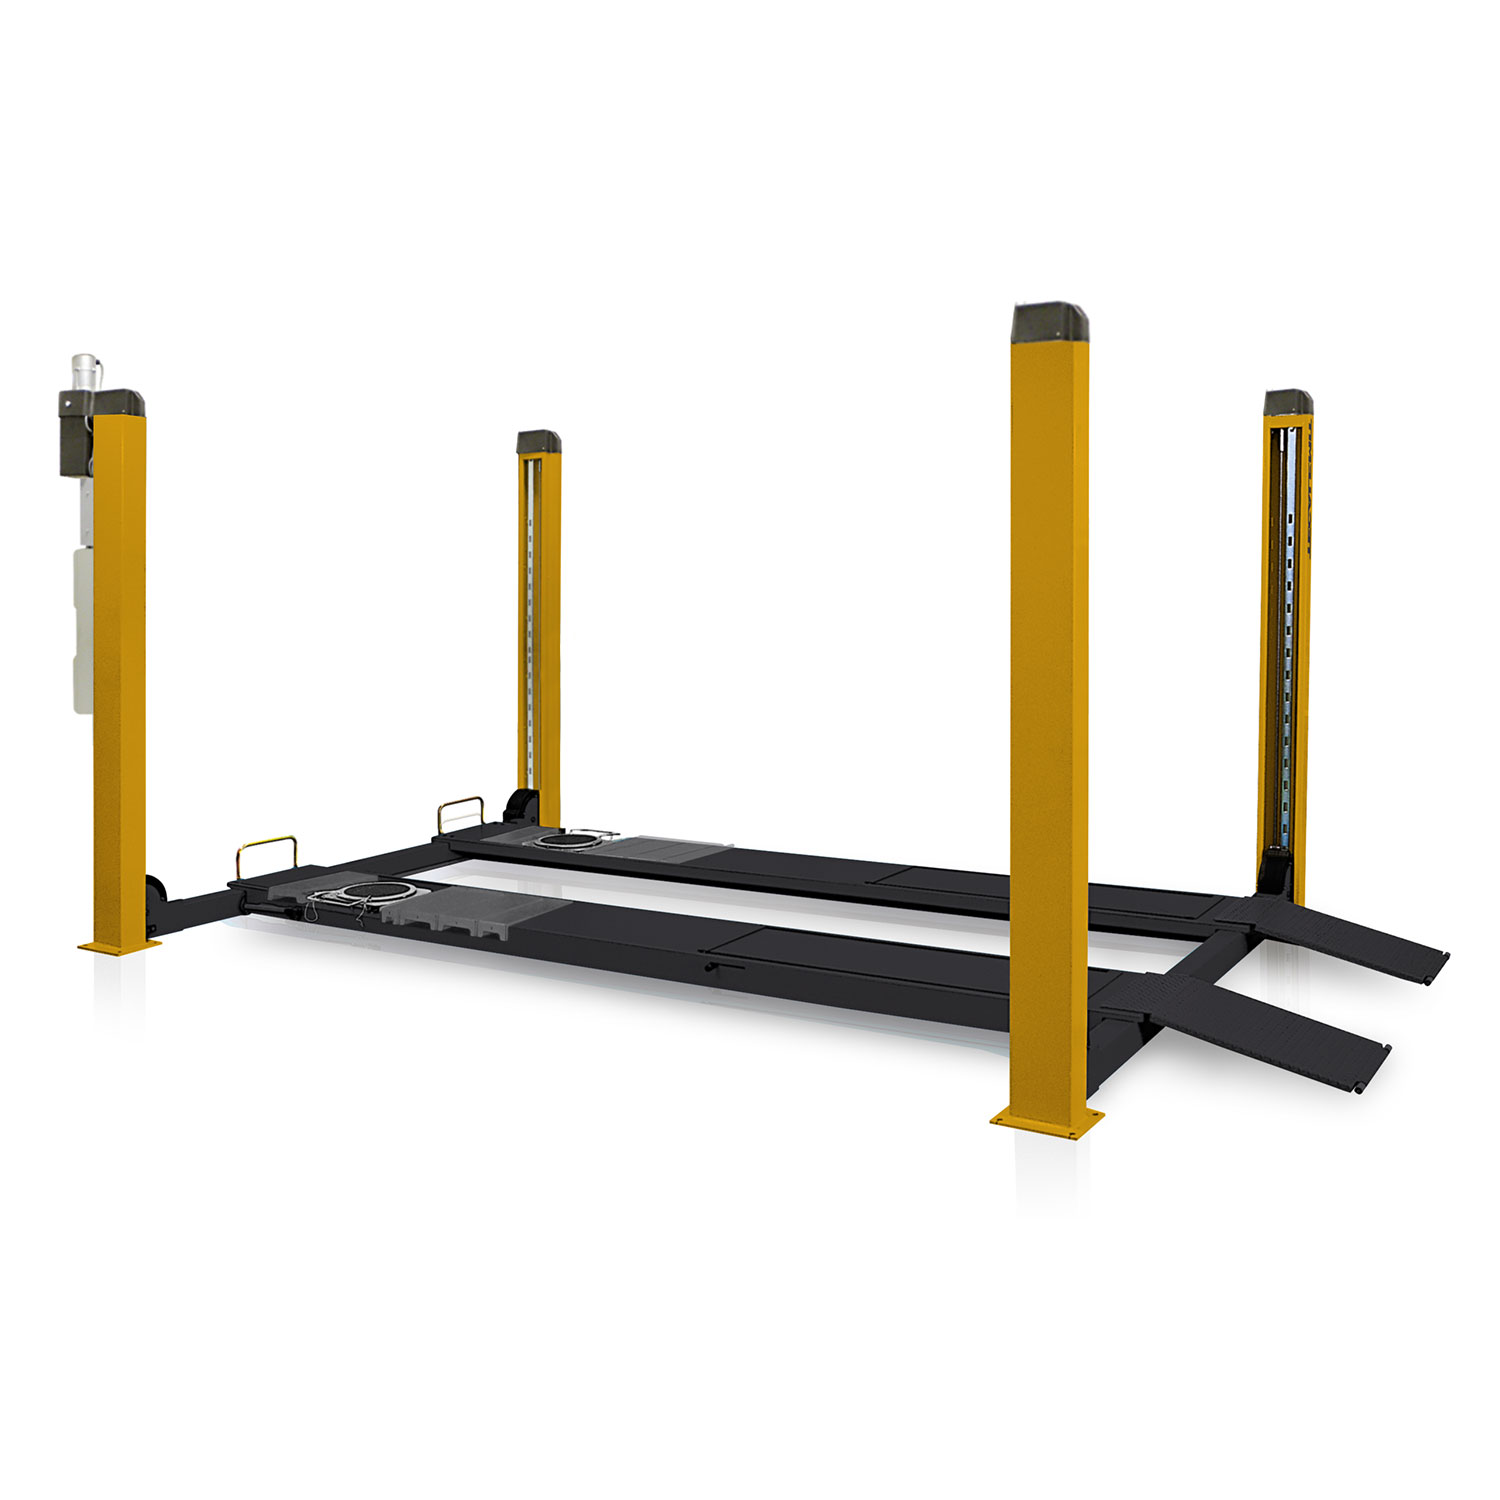 TECG440W - 4 Tonne 4 Post Wheel Alignment Hoist